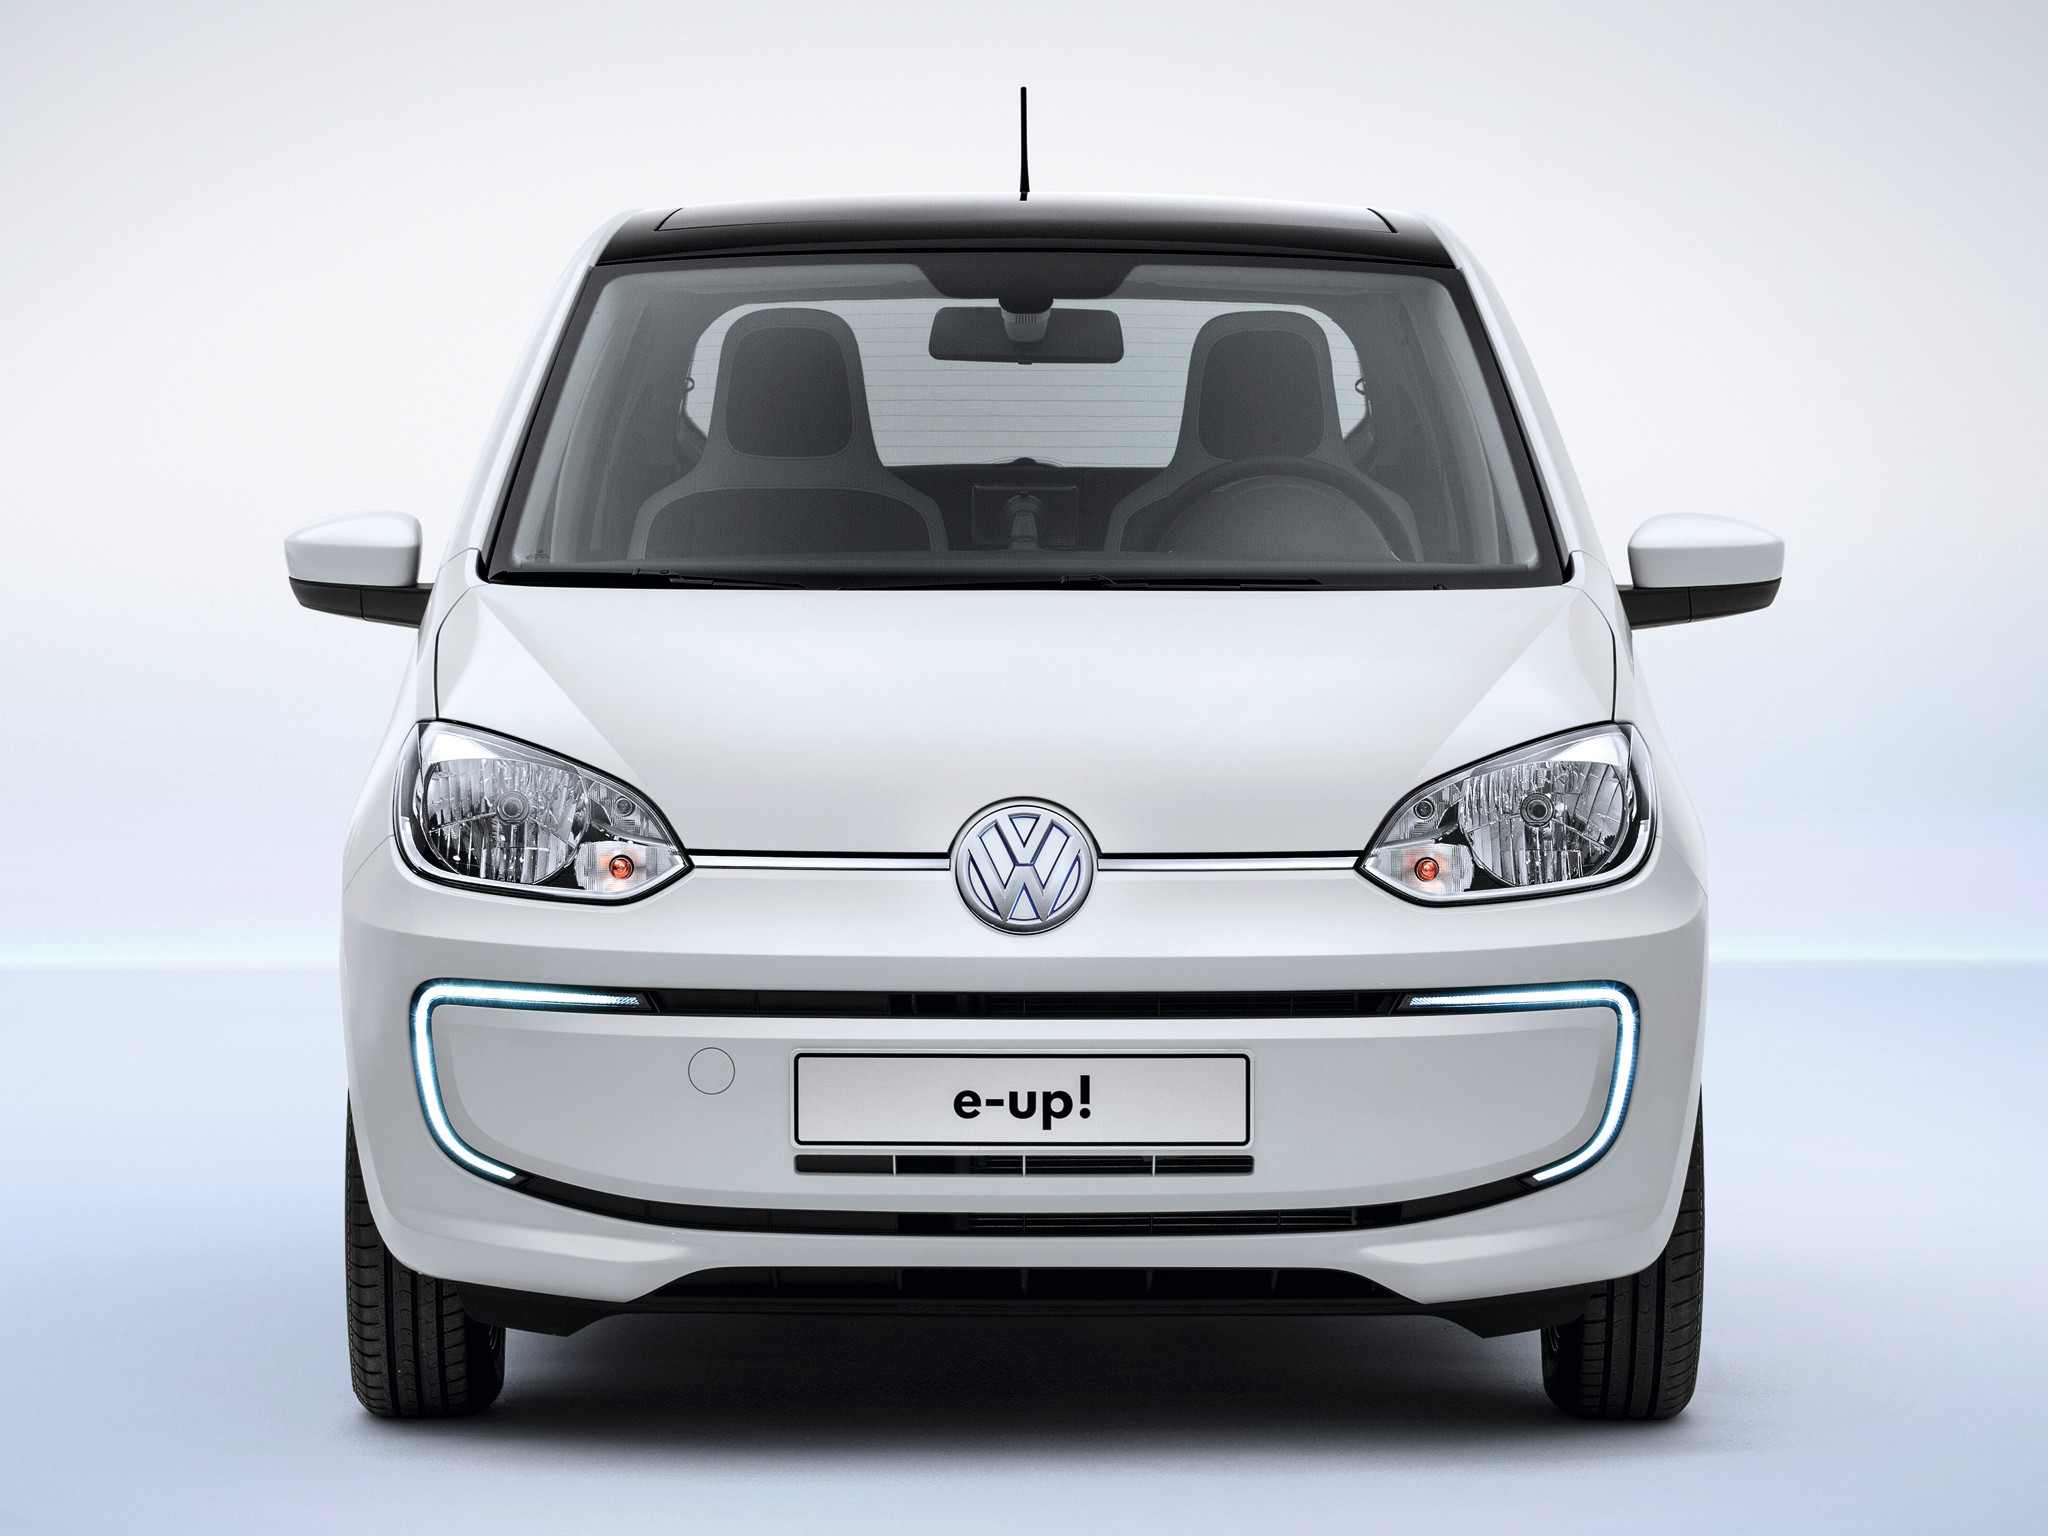 volkswagen_e-up_2